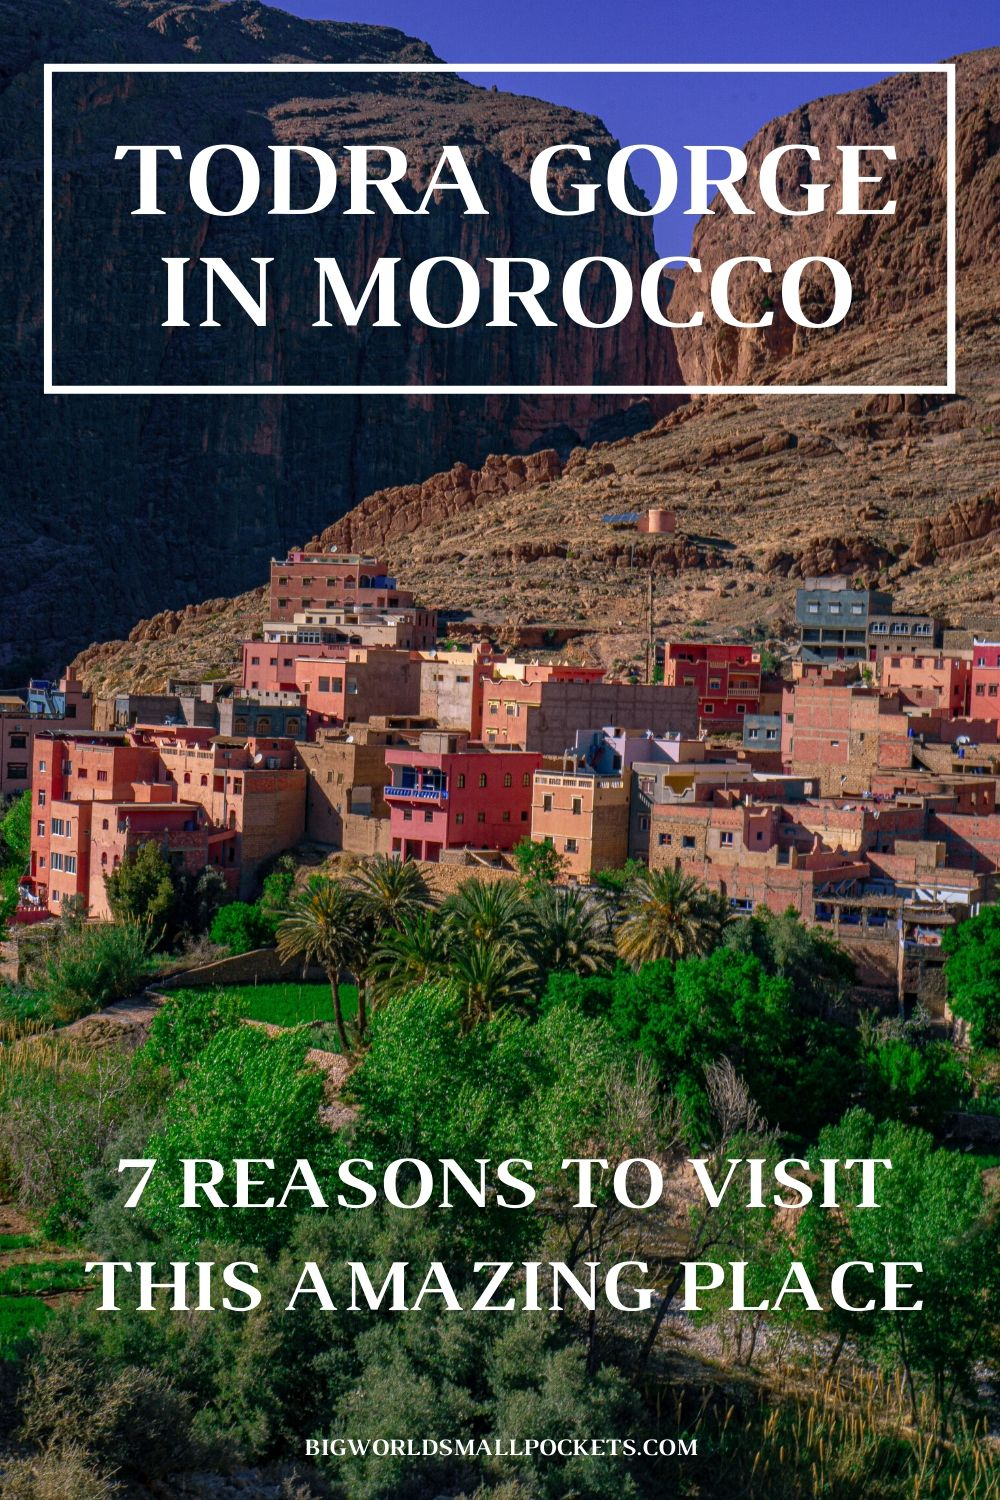 Todra Gorge in Morocco - 7 Reasons To Visit